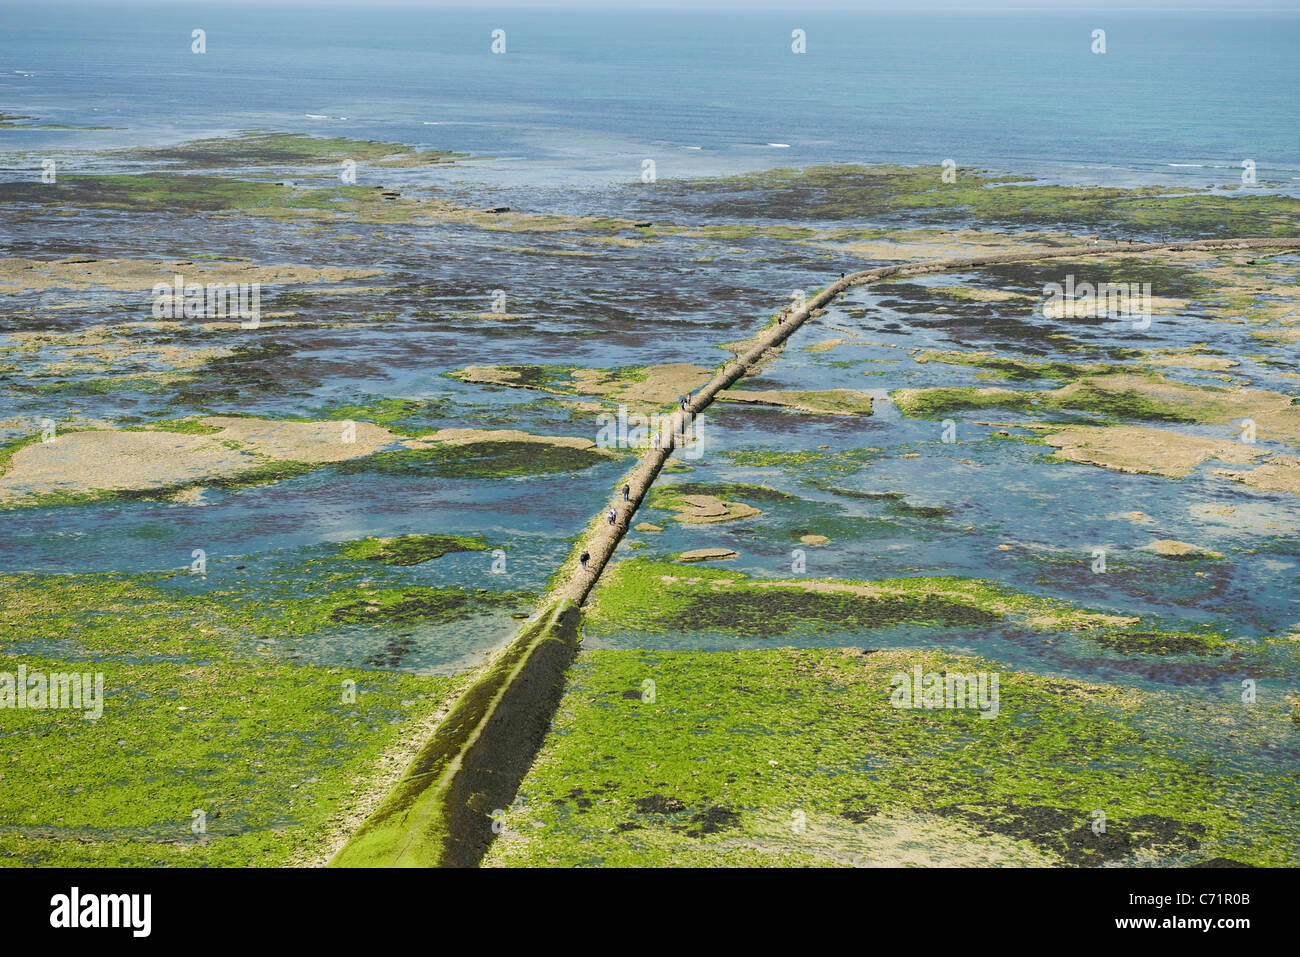 Aerial view of breakwater, Ile de RŽ, Charente-Maritime, France - Stock Image